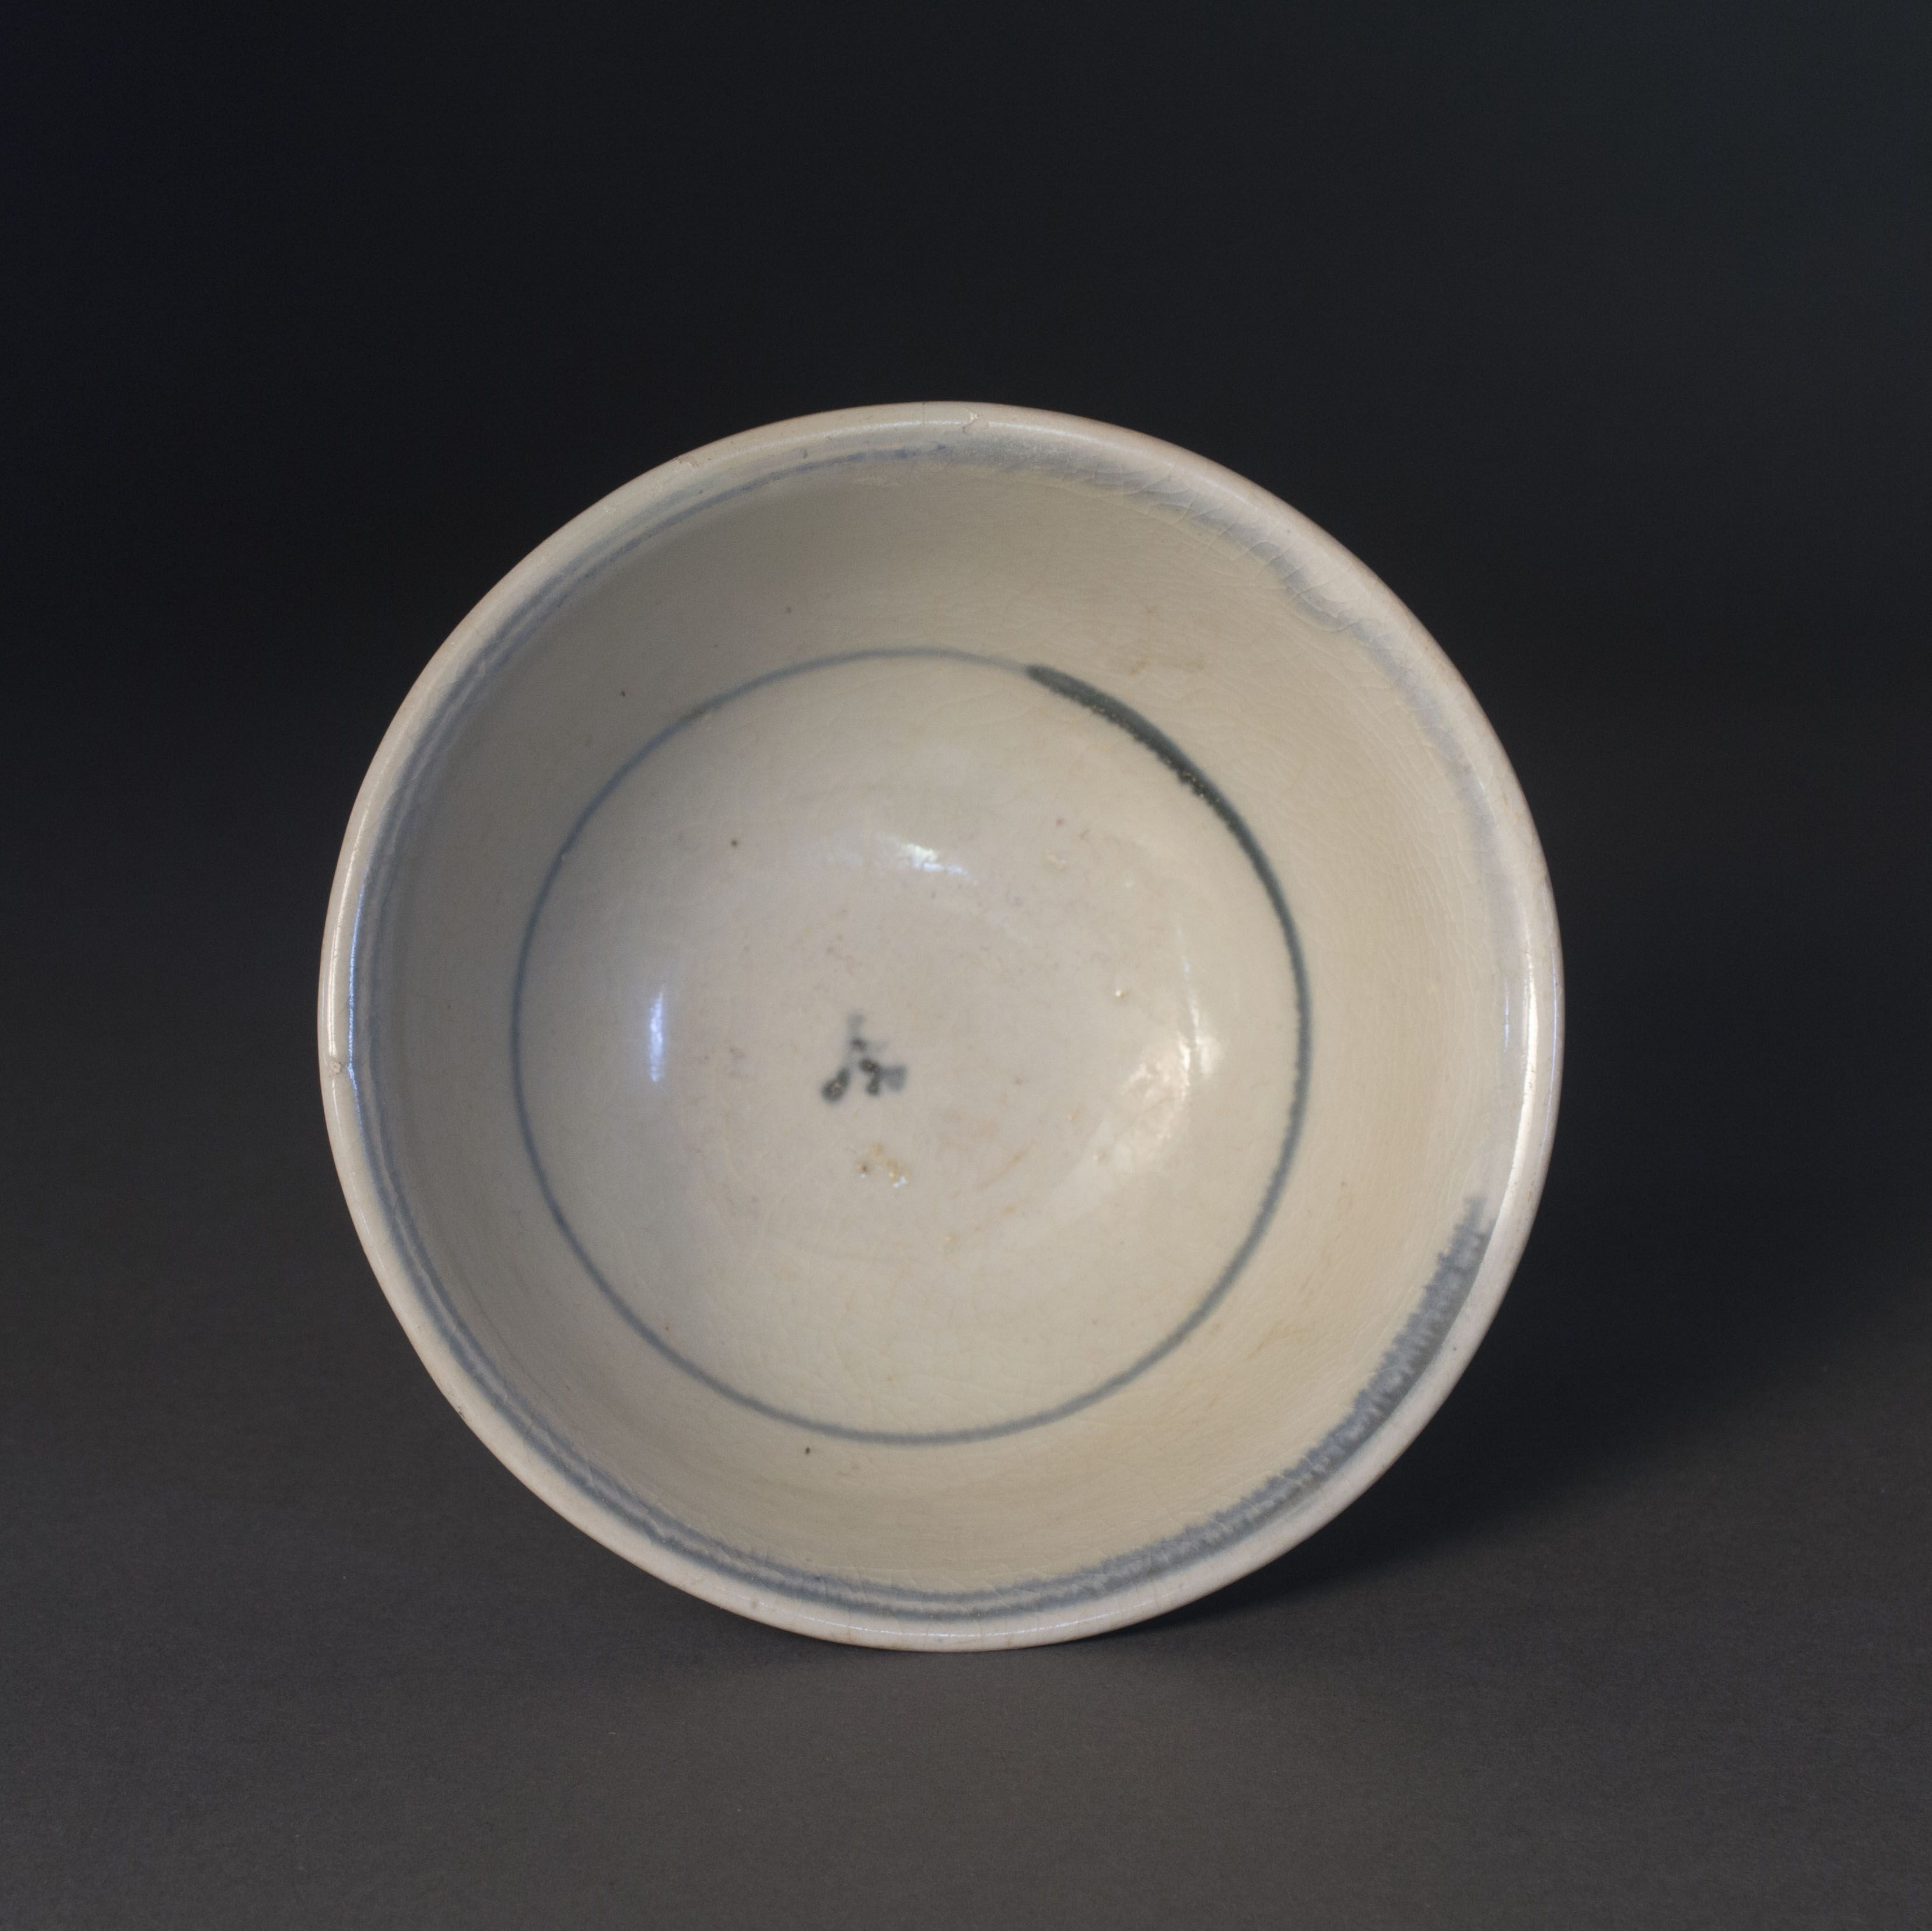 interior view of 16th cent vietnamese wine cup. Single